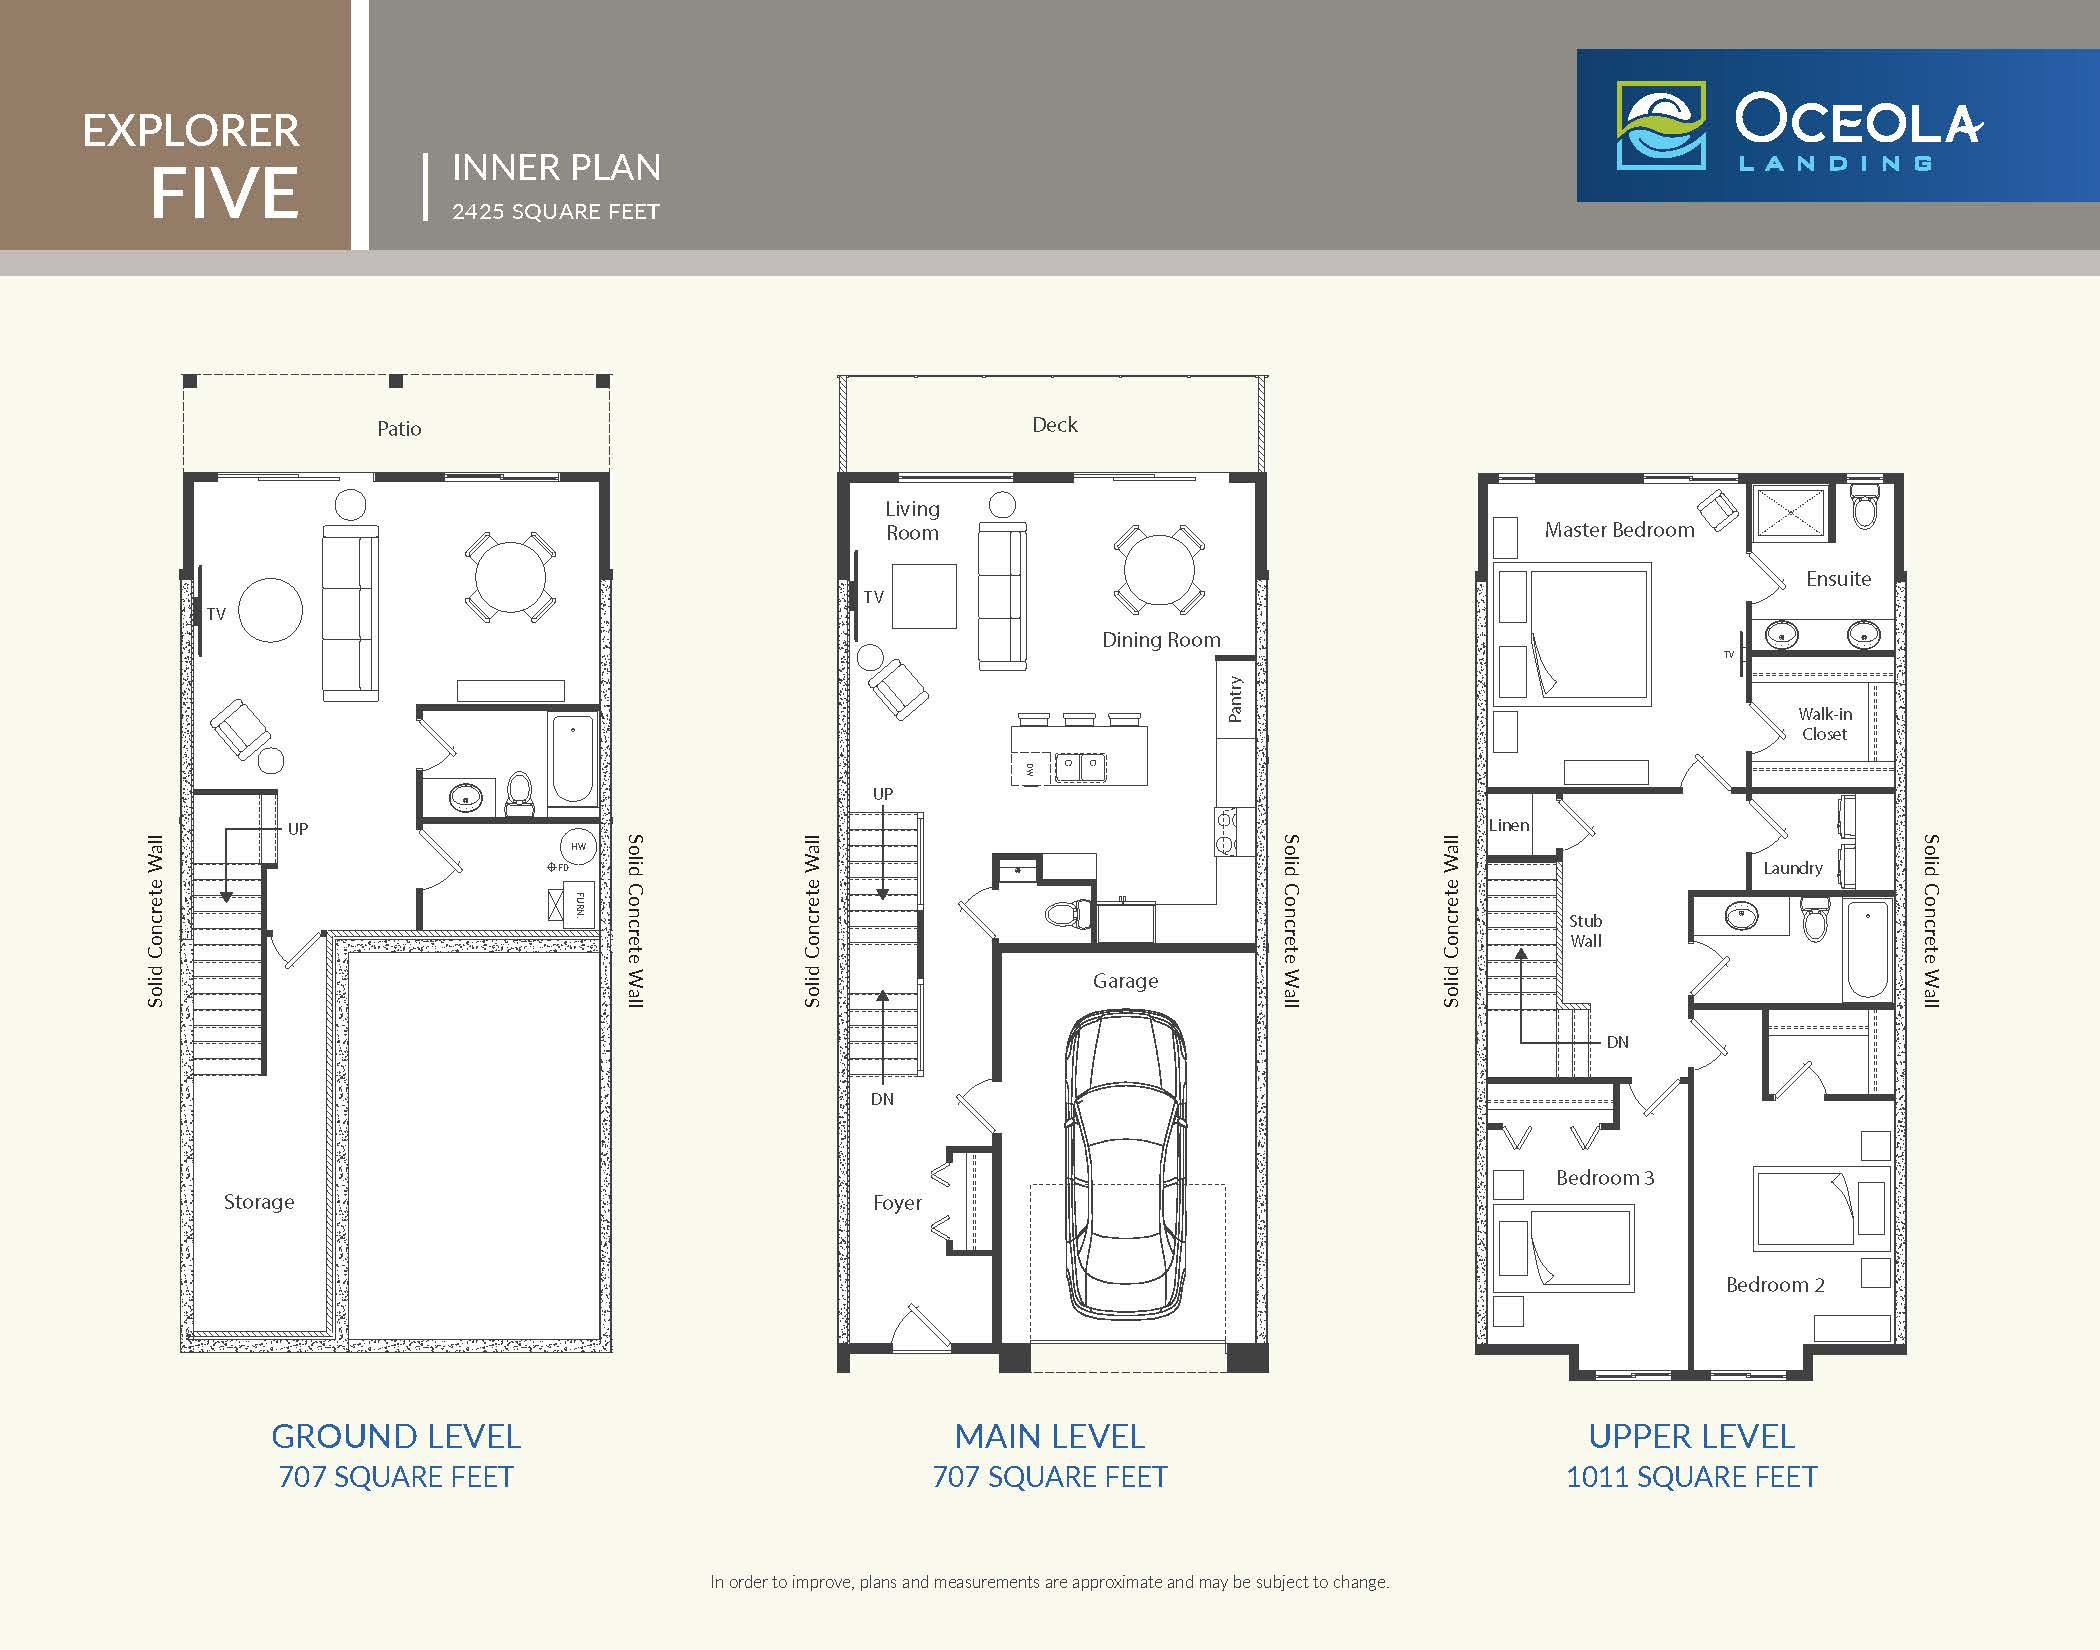 3 bedroom townhomes in Lake Country, BC